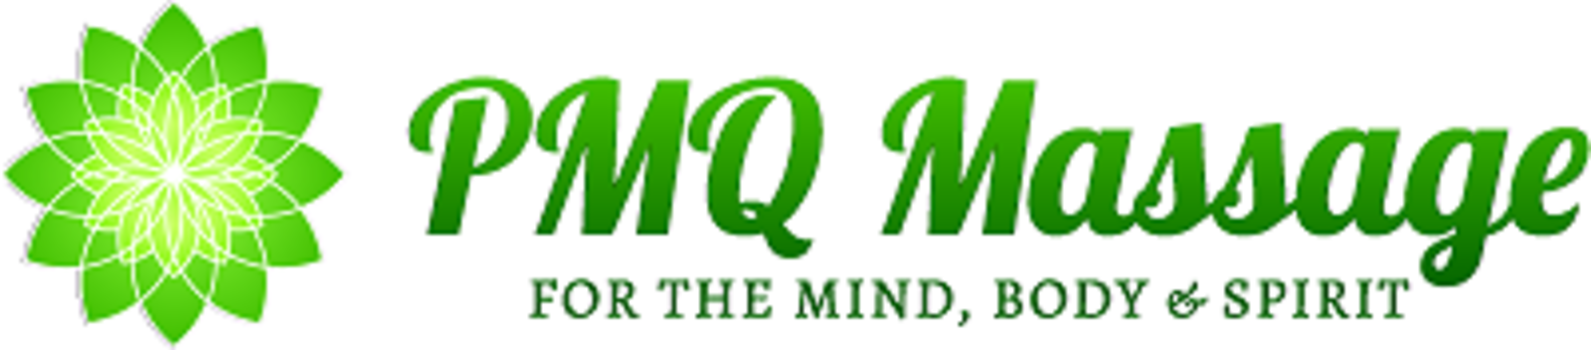 Pmq-massage-logoweb